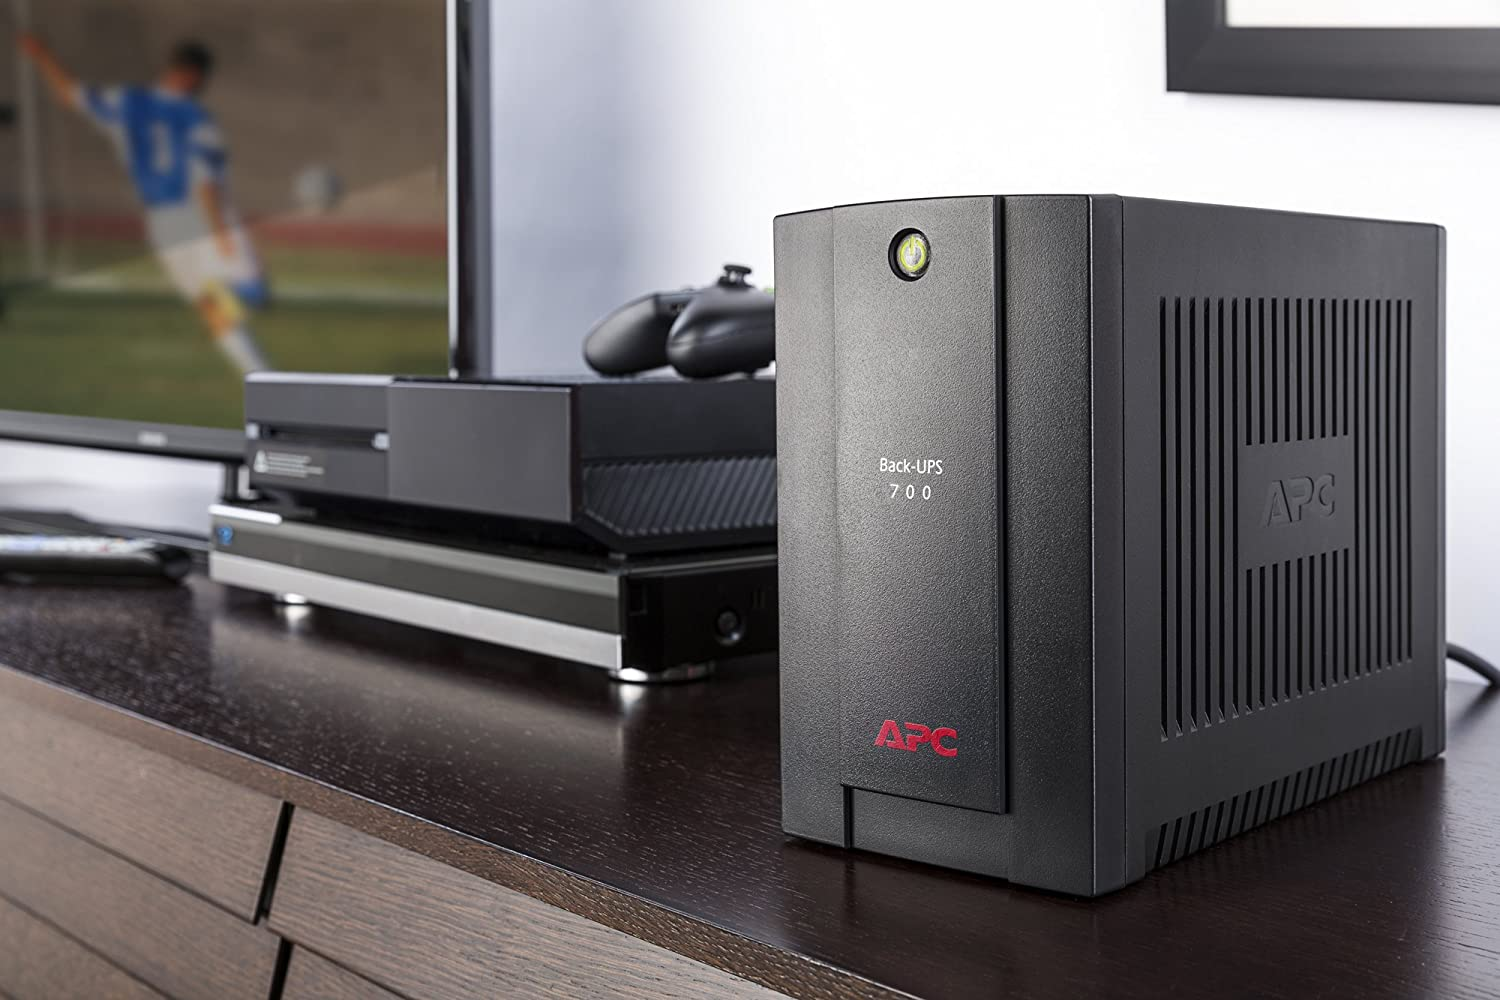 Tower Black uninterruptible power supply s UPS APC Back-UPS Line-Interactive 700VA 4AC outlet